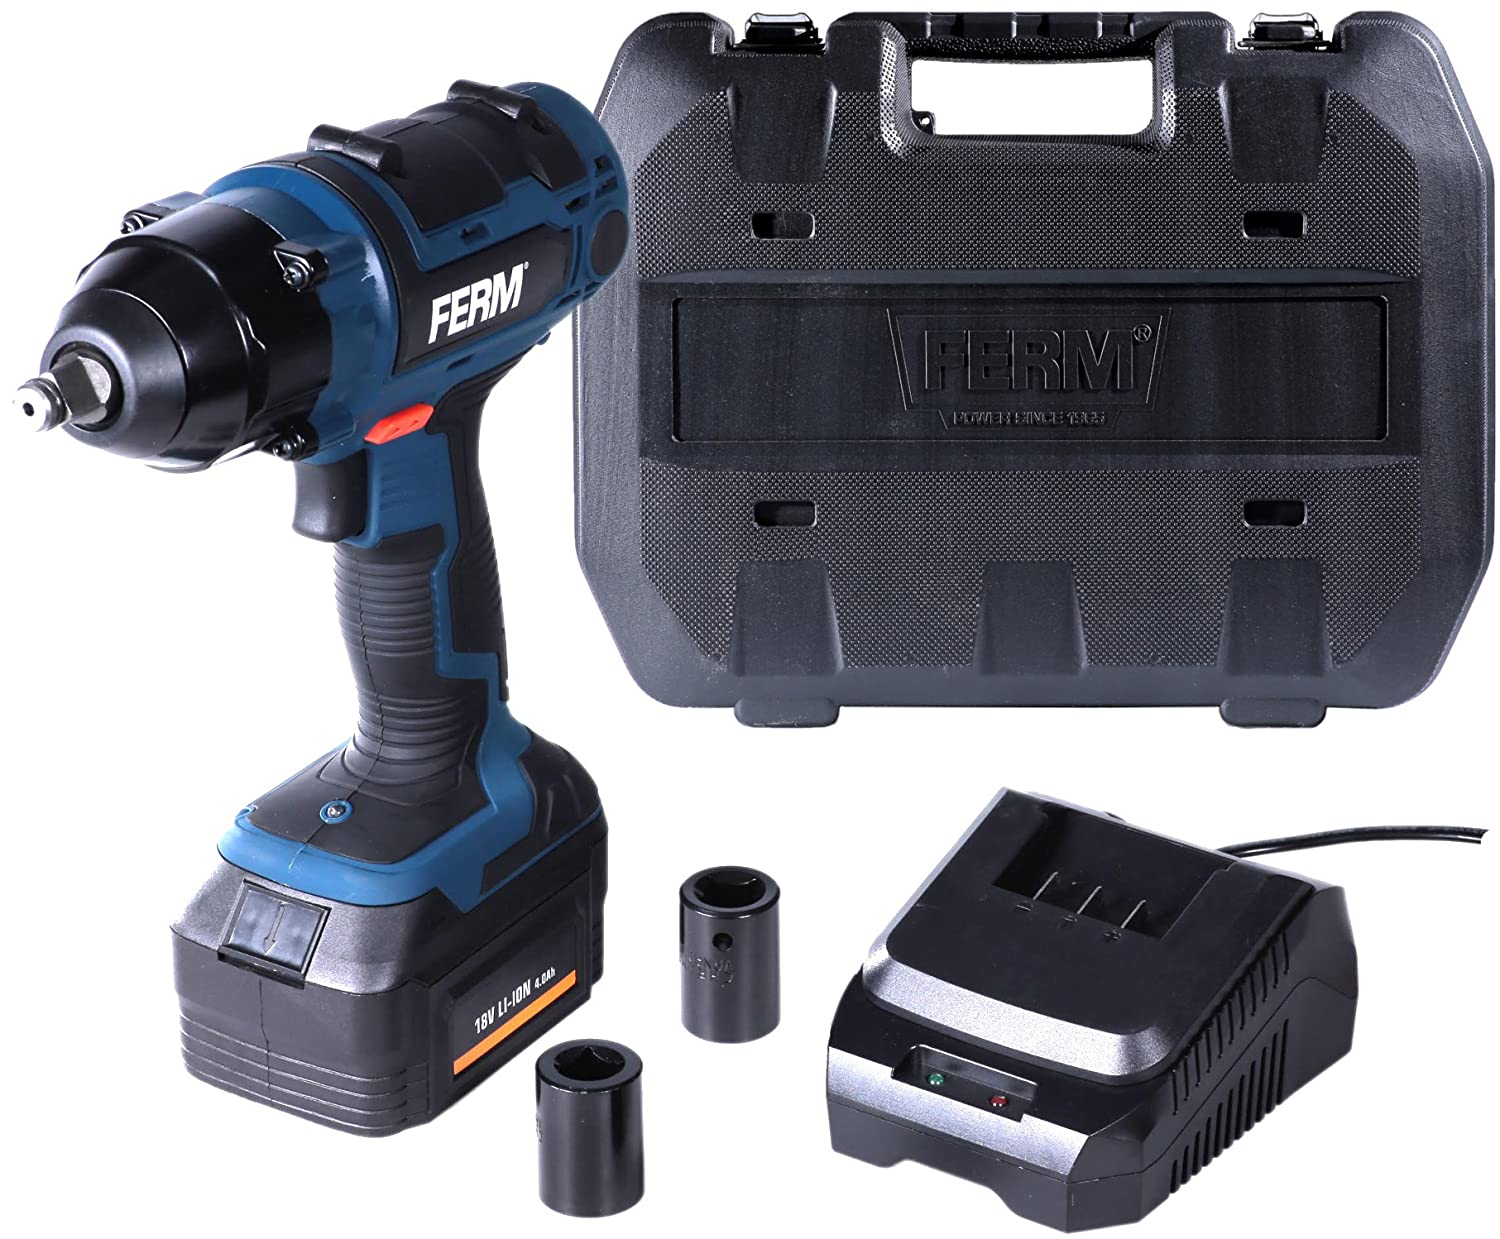 4 Impact Sockets /& Extension Bar 2 Years Warranty Wolf 380NM Torque 18v Cordless 1//2 Impact Wrench Kit with Li-Ion Battery